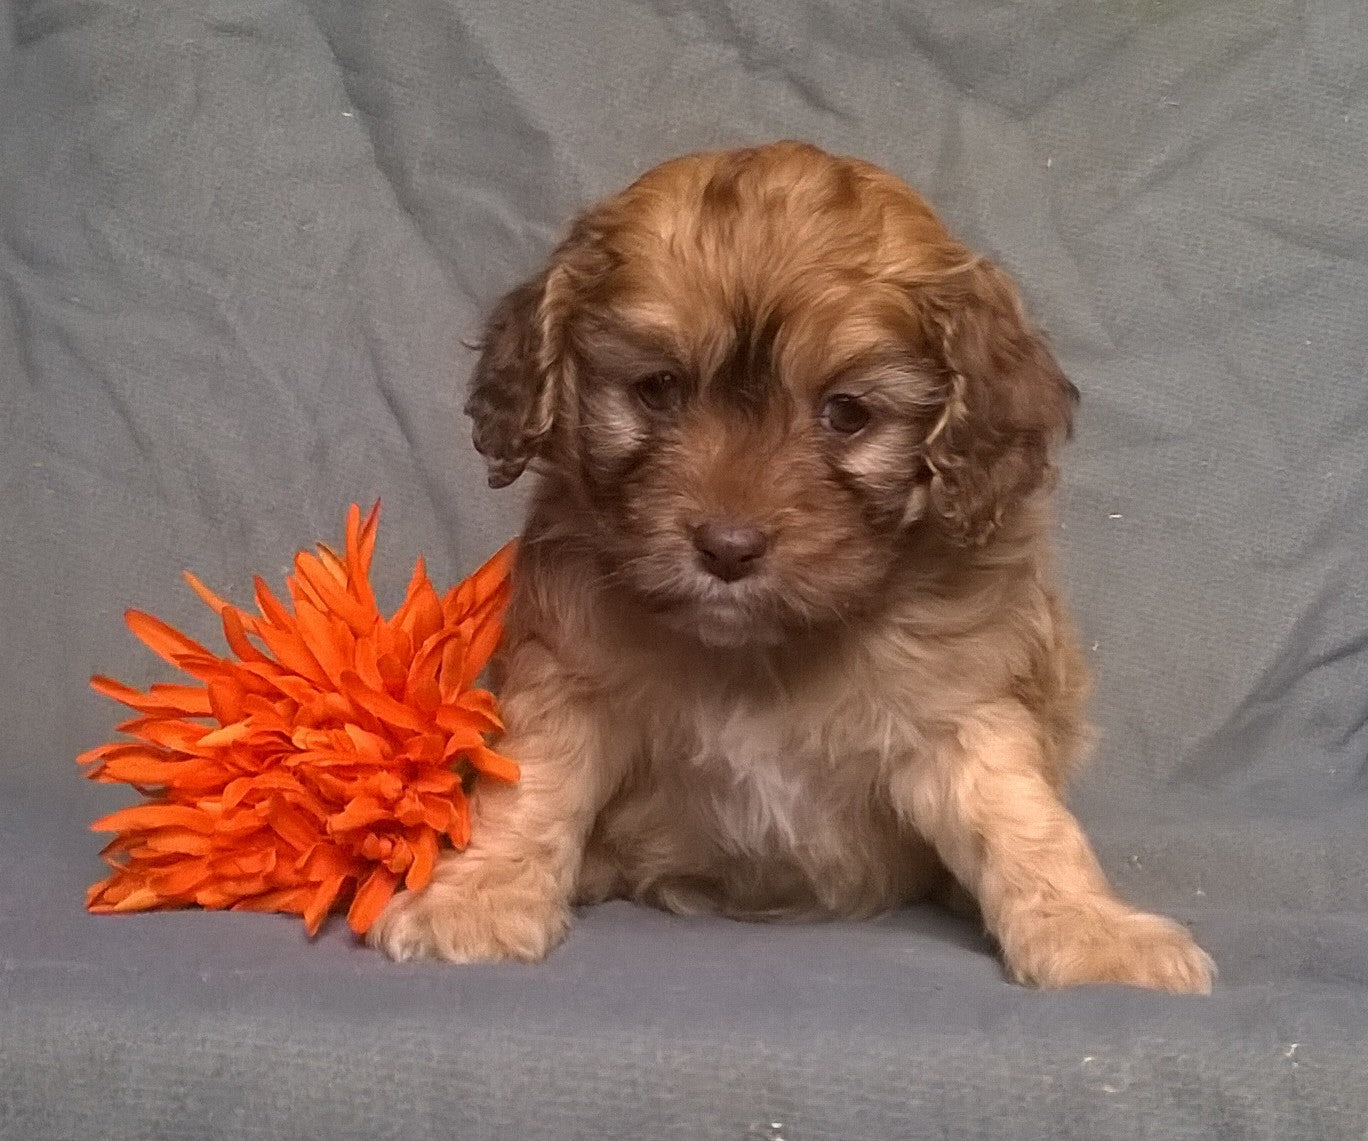 Cockapoo Puppy For Sale Berlin Ohio Muffin Female  Ac Puppies Llc-3426